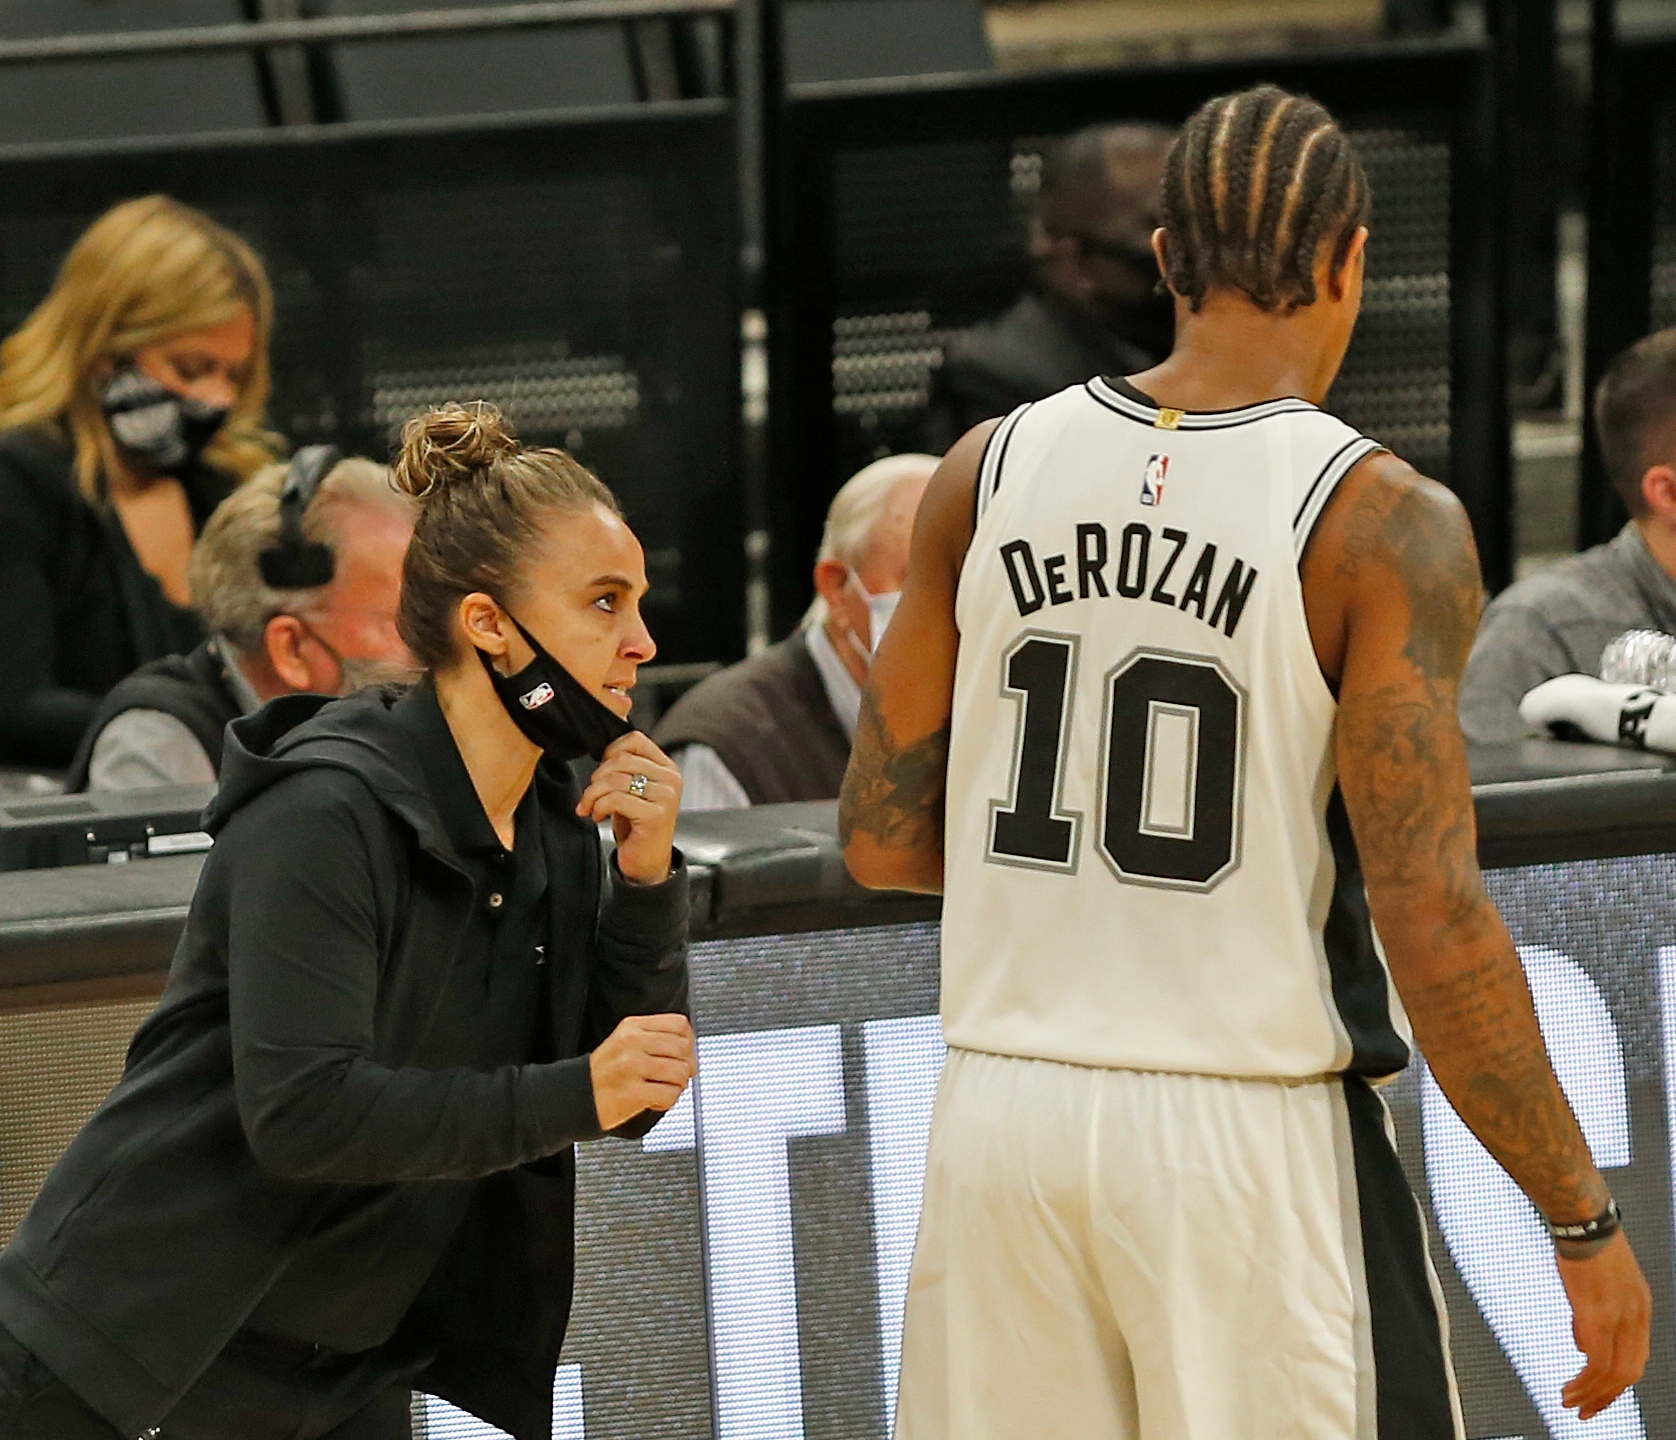 DeMar DeRozan #10 of the San Antonio Spurs receives instruction from assistant coach Becky Hammon, who was filling for an ejected Gregg Popvich during second half action at the AT&T Center in San Antonio, Texas, on Dec. 30, 2020. (Ronald Cortes / Getty Images)